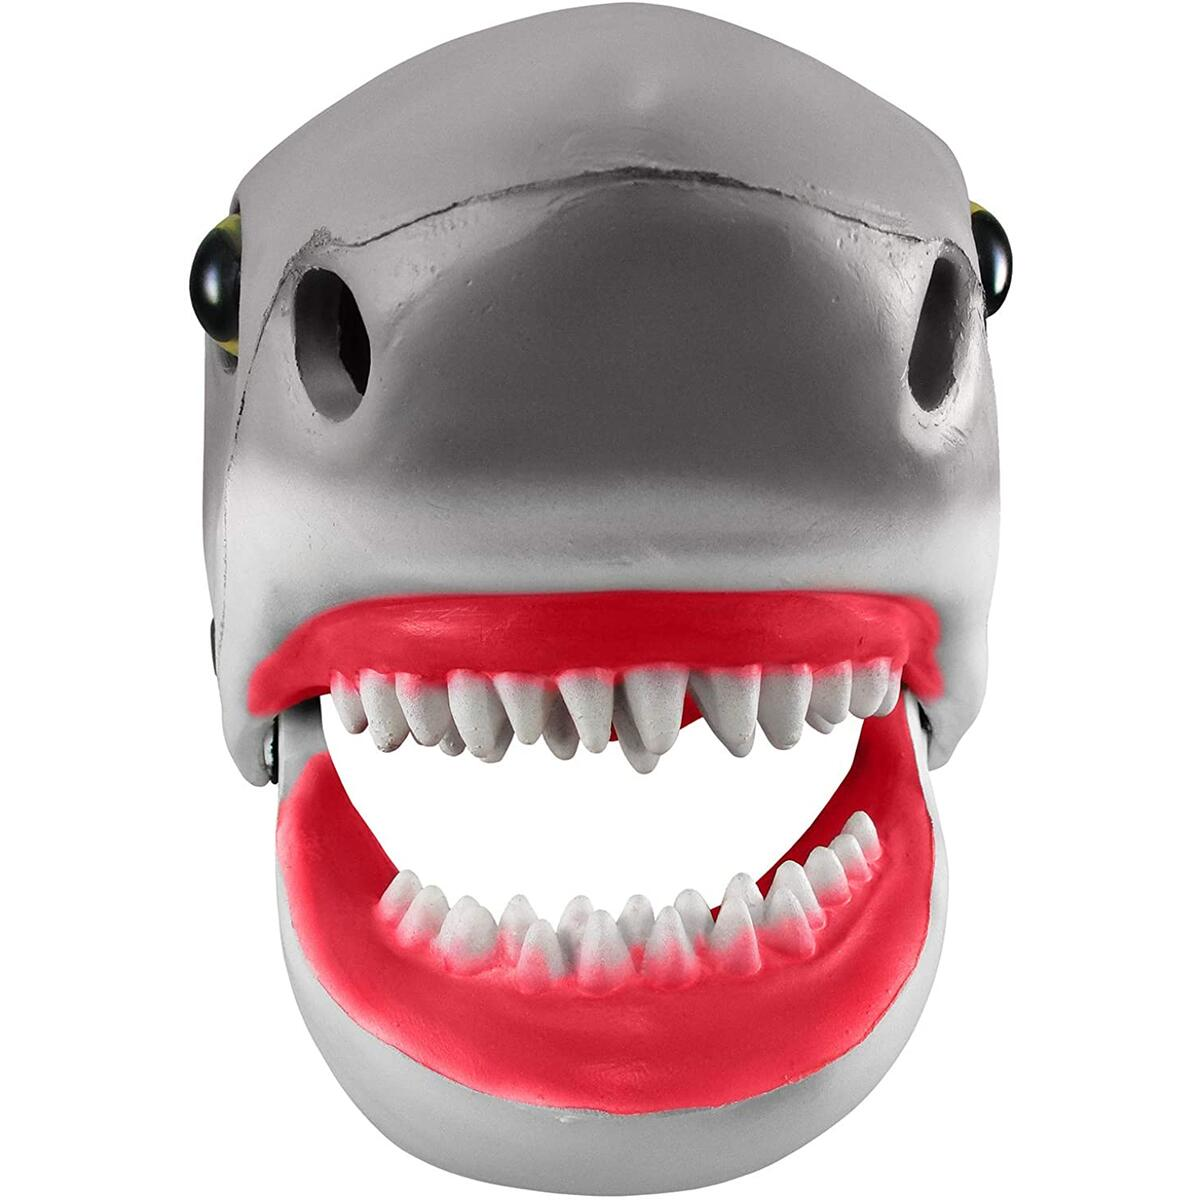 Shark Mask - Shark Head Moving Mouth Mask - Shark Halloween Mascot Animal Costume Accessory - Gray, Adjustable